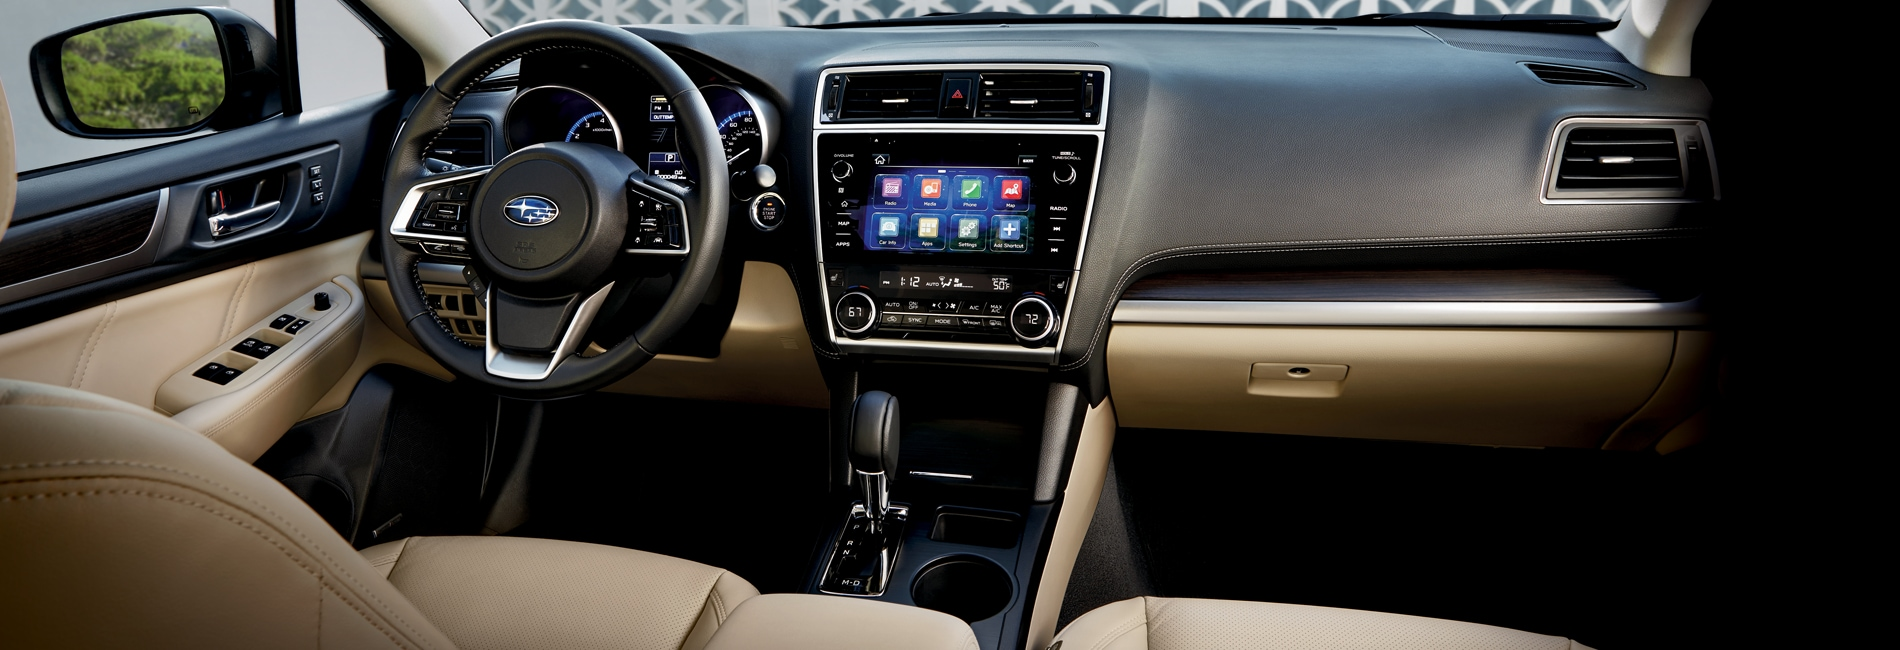 Subaru Legacy Interior Vehicle Features